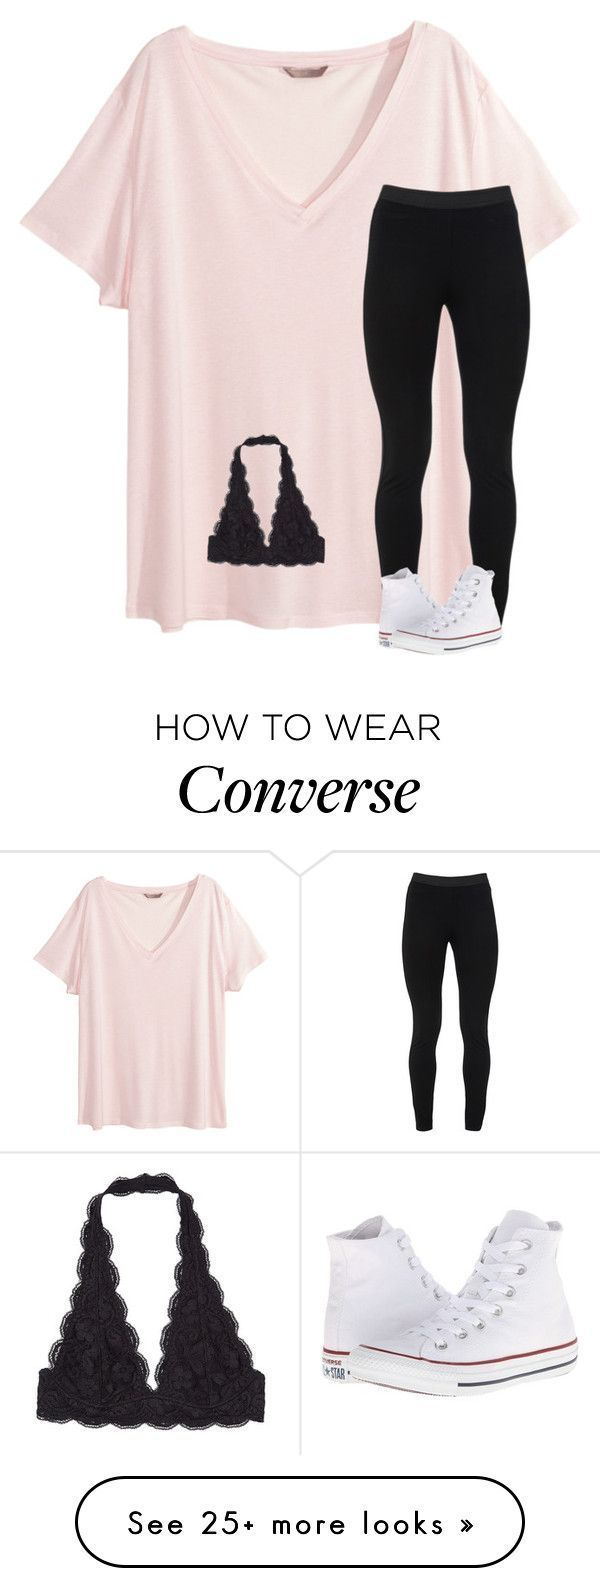 HALPY BIRTHDAY LILLY by katherinecat14 on Polyvore featuring H&M, Peace of Cloth and Converse